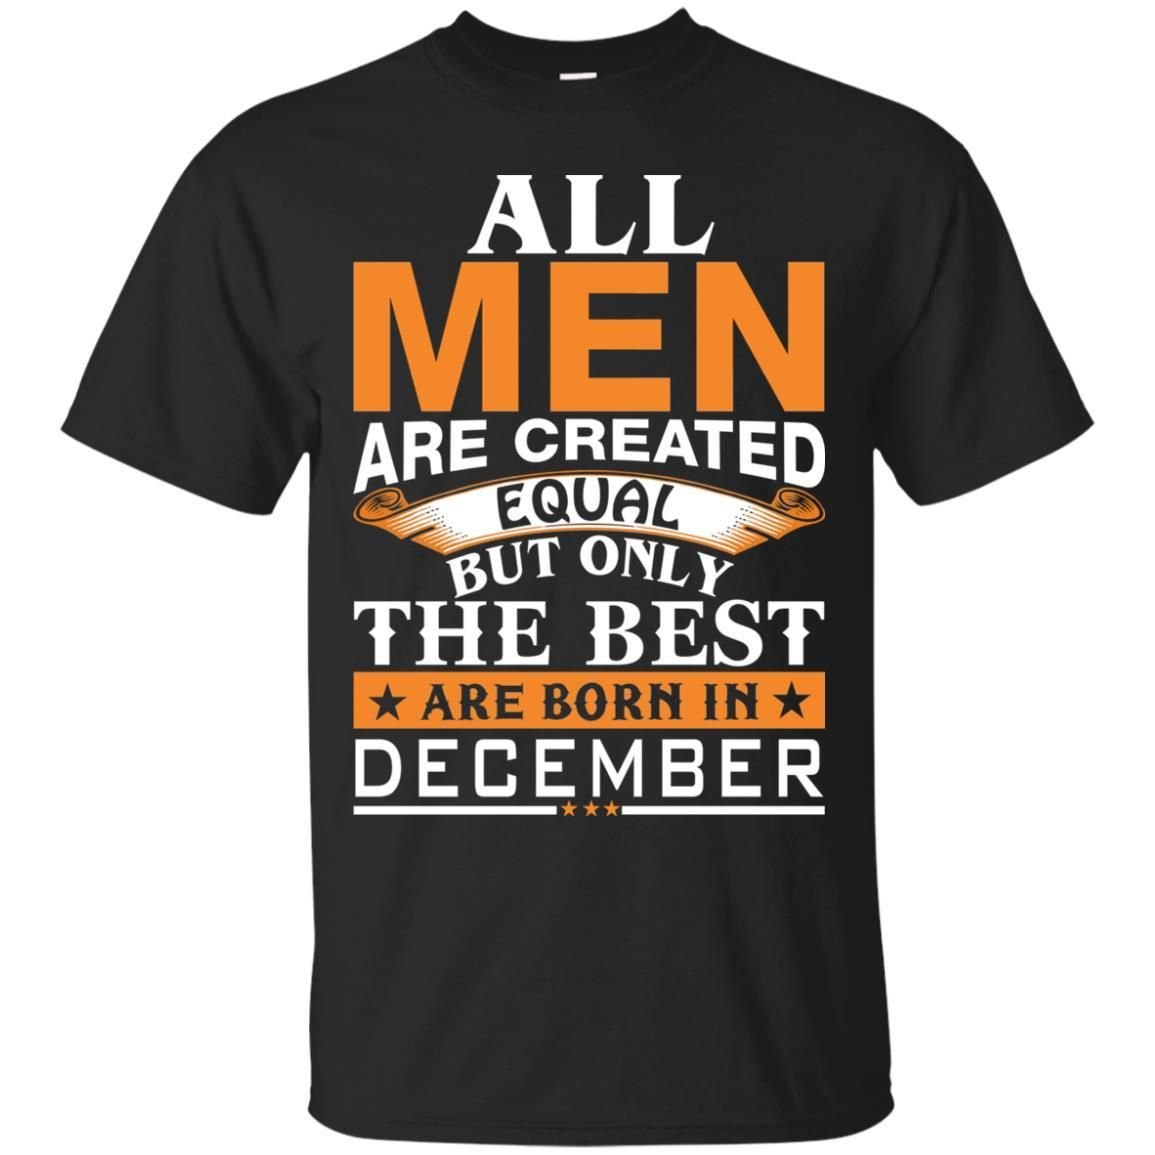 9cc82f17a Vin Diesel: All Men Created Equal But Best Born In December shirt ...